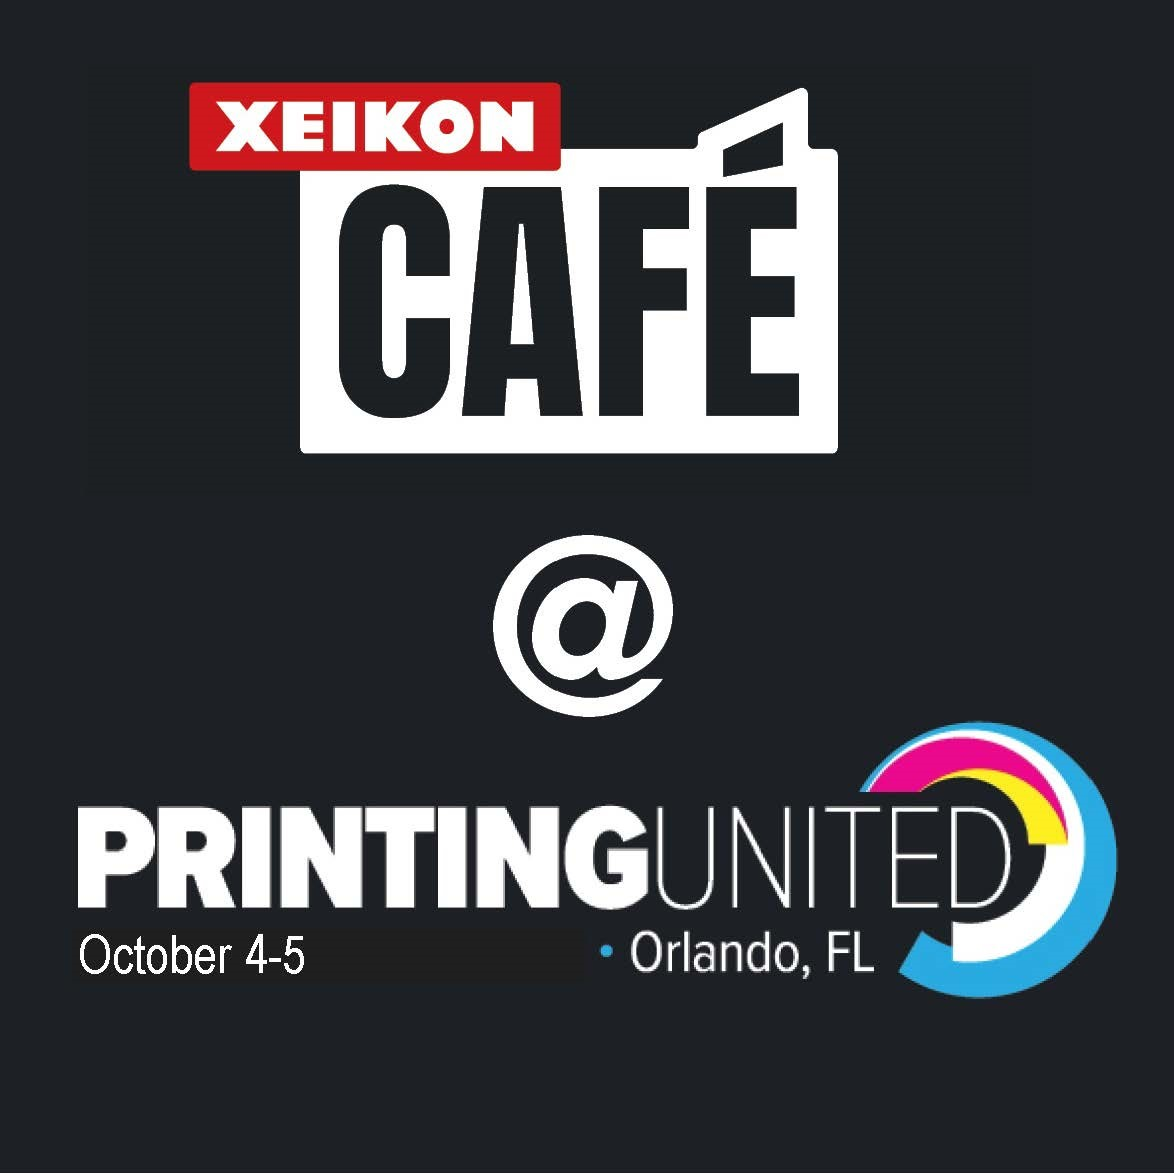 Xeikon Café to come to the PRINTING United UX